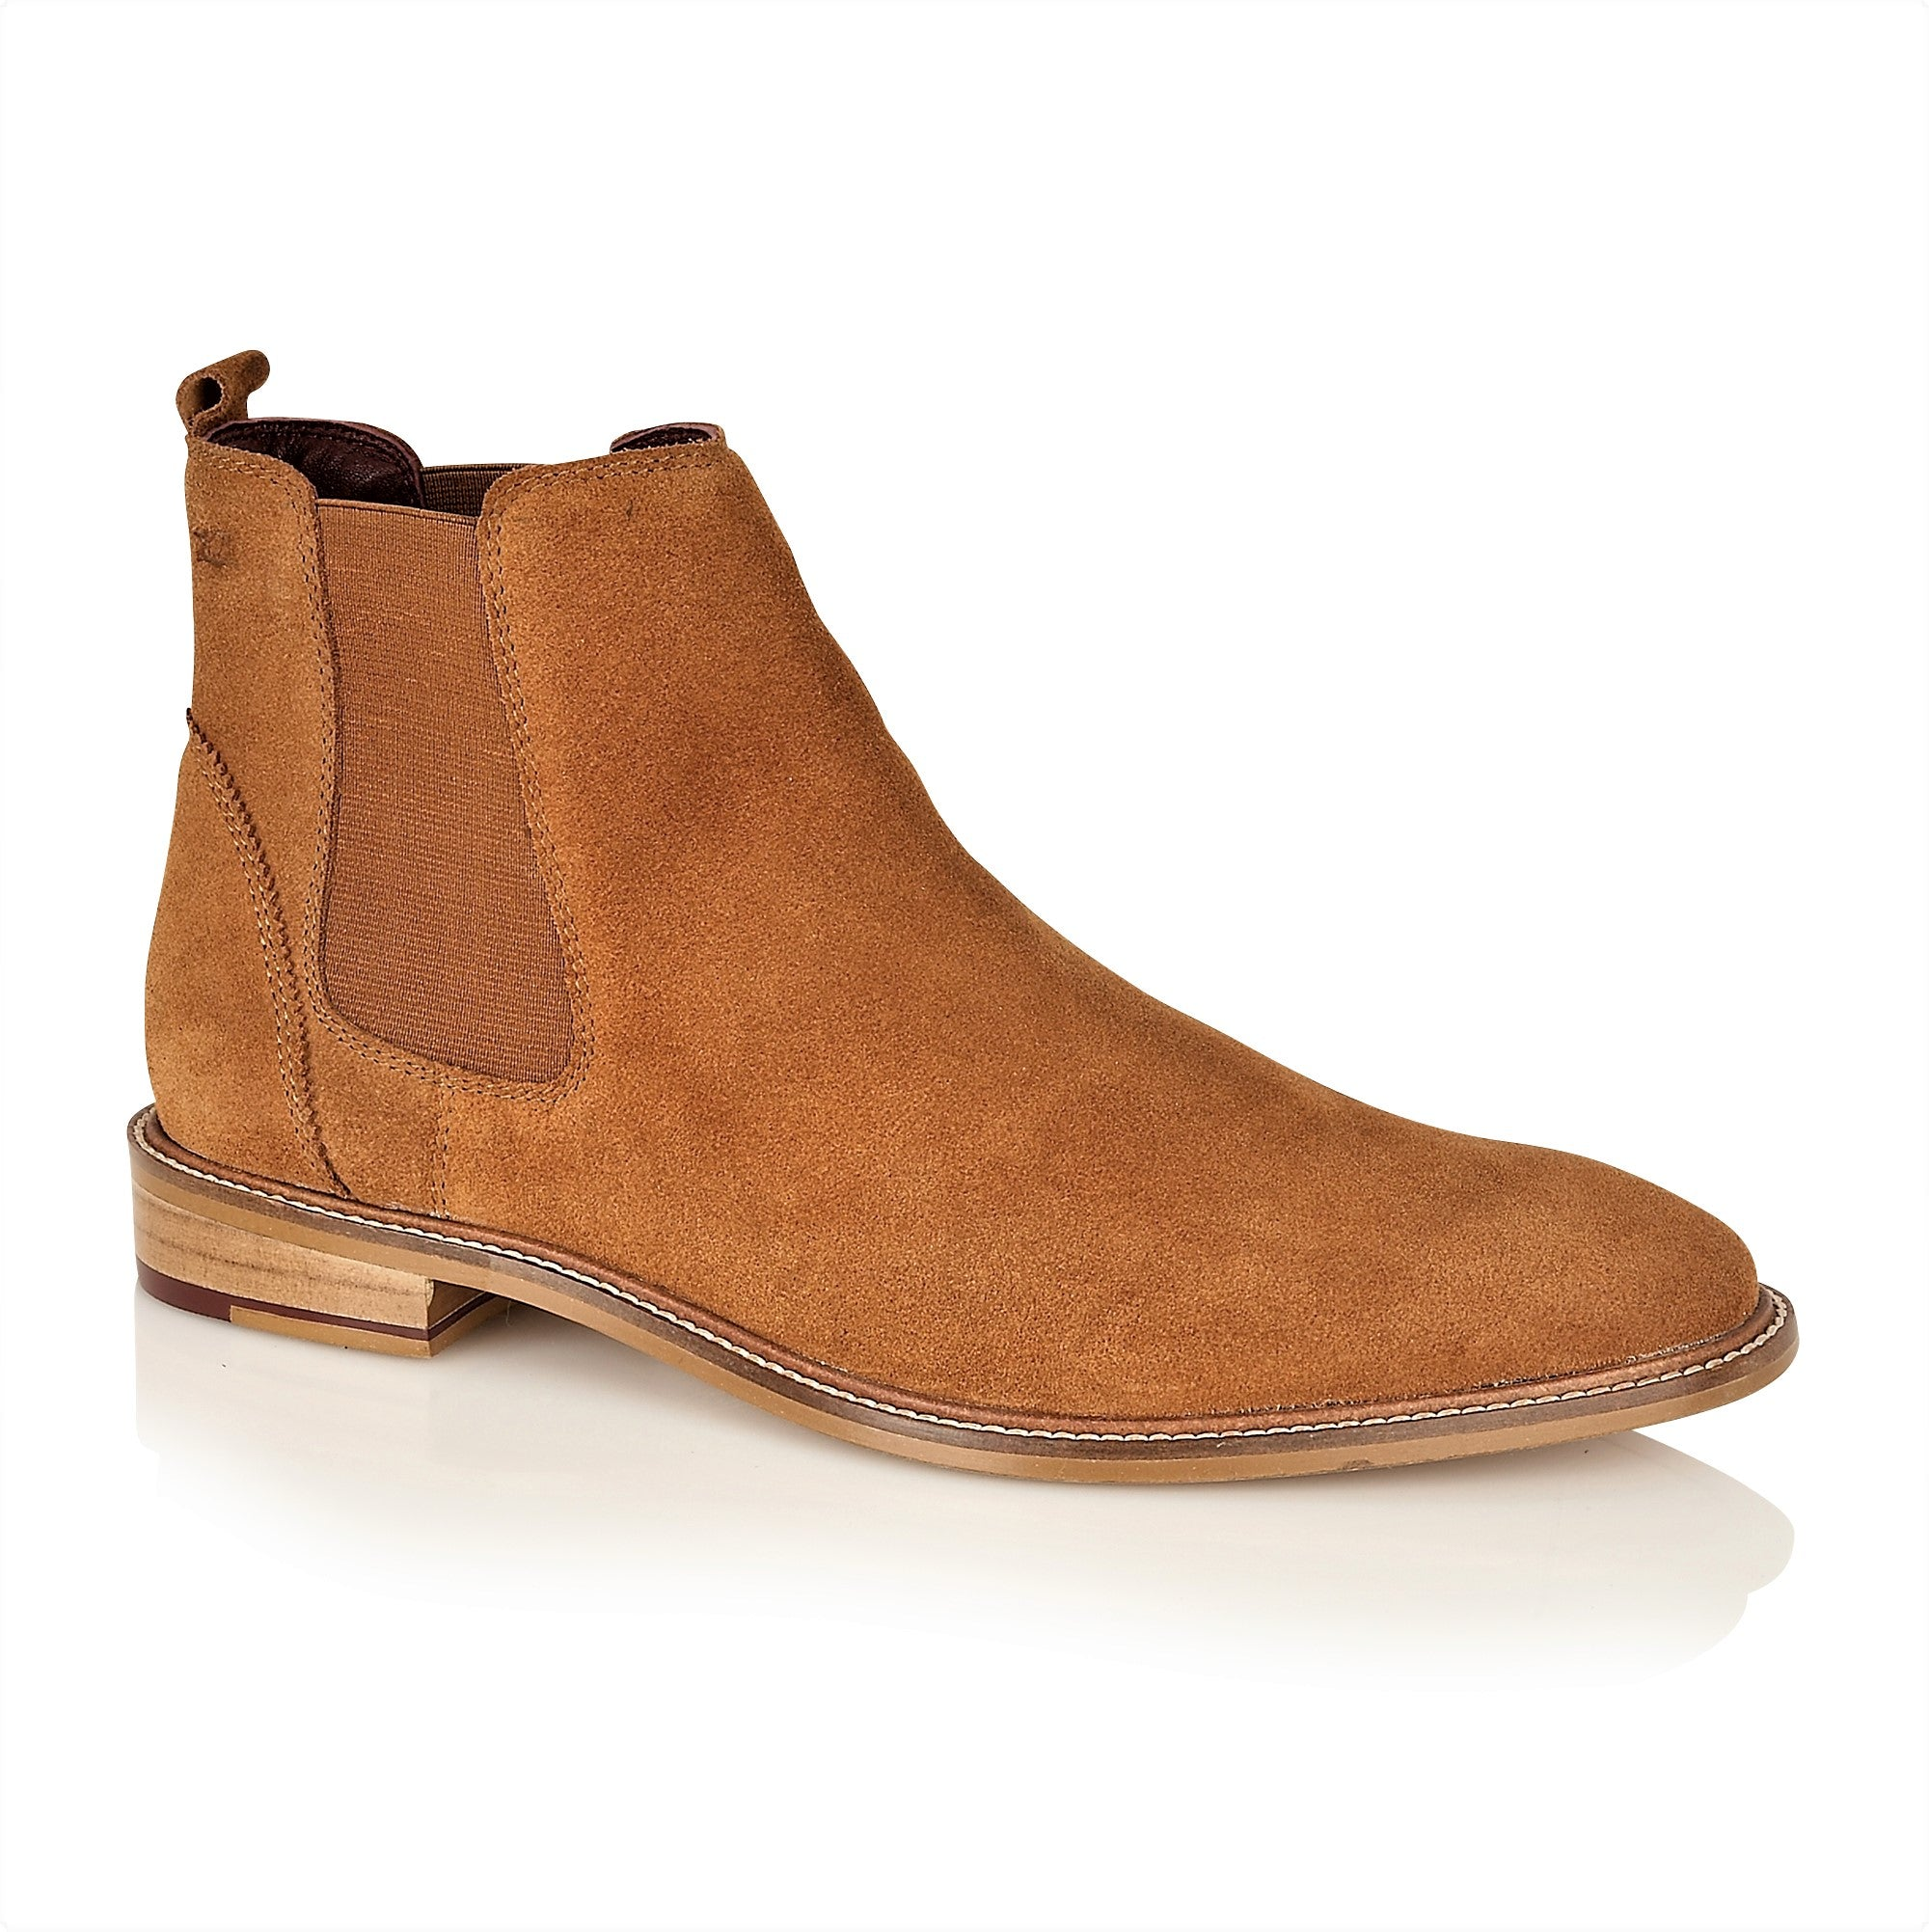 Hamilton Suede Chelsea Boot Tan, Boots, London Brogues  - London Brogues